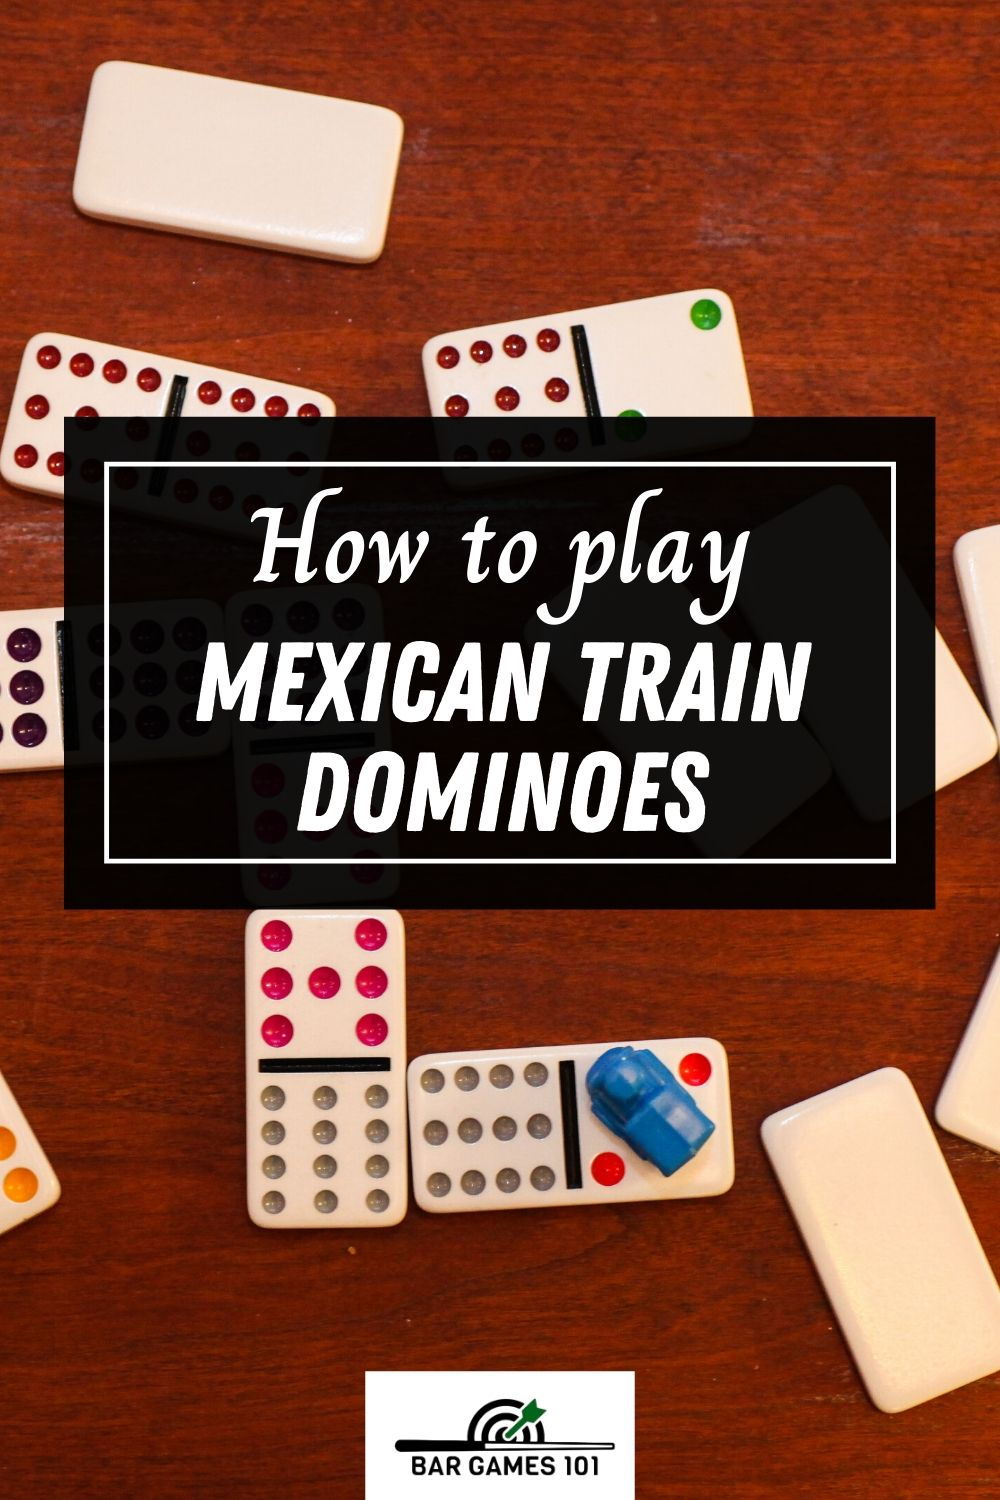 How to Play Mexican Train A Complete Guide (Bar Games 101